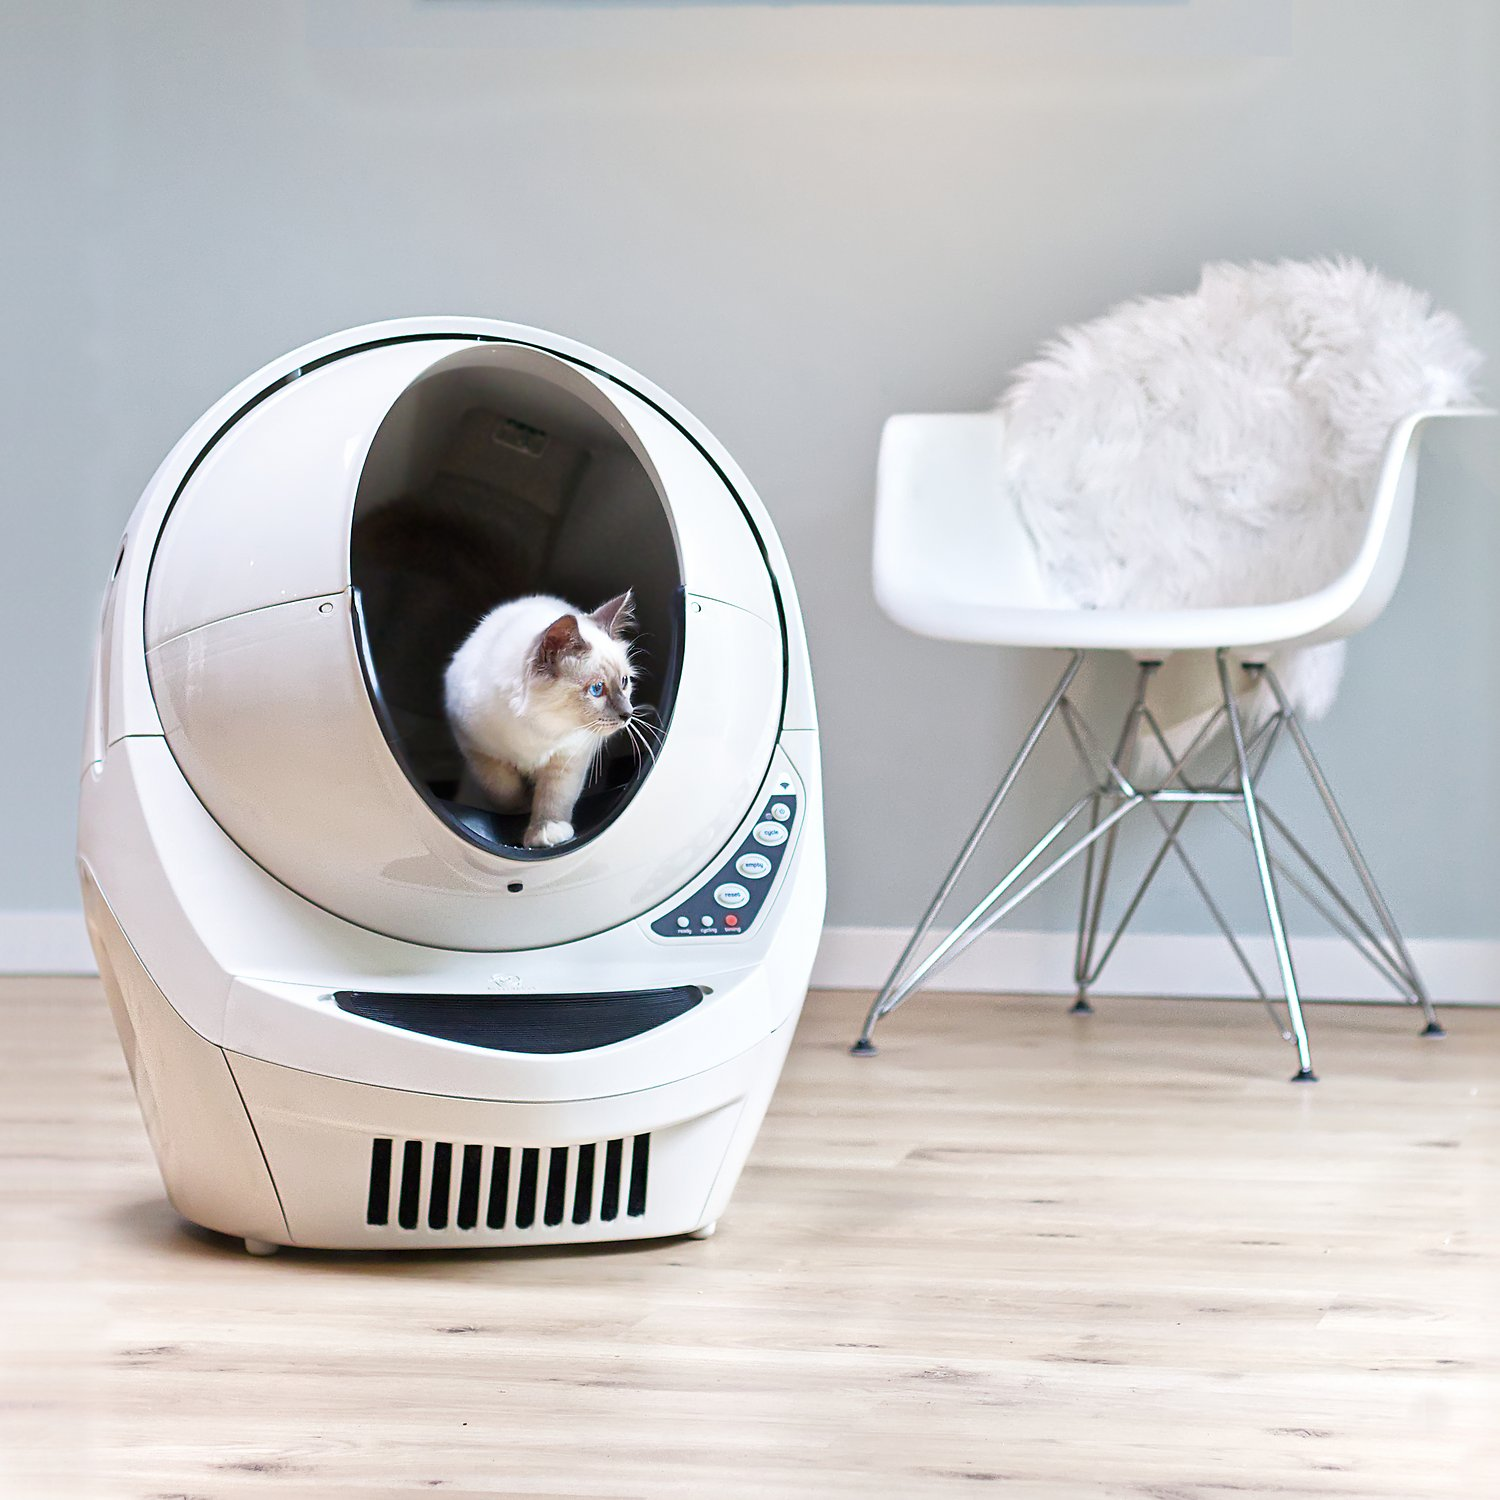 Rated WiFi-enabled Automatic Self-cleaning Litter Box for Cats